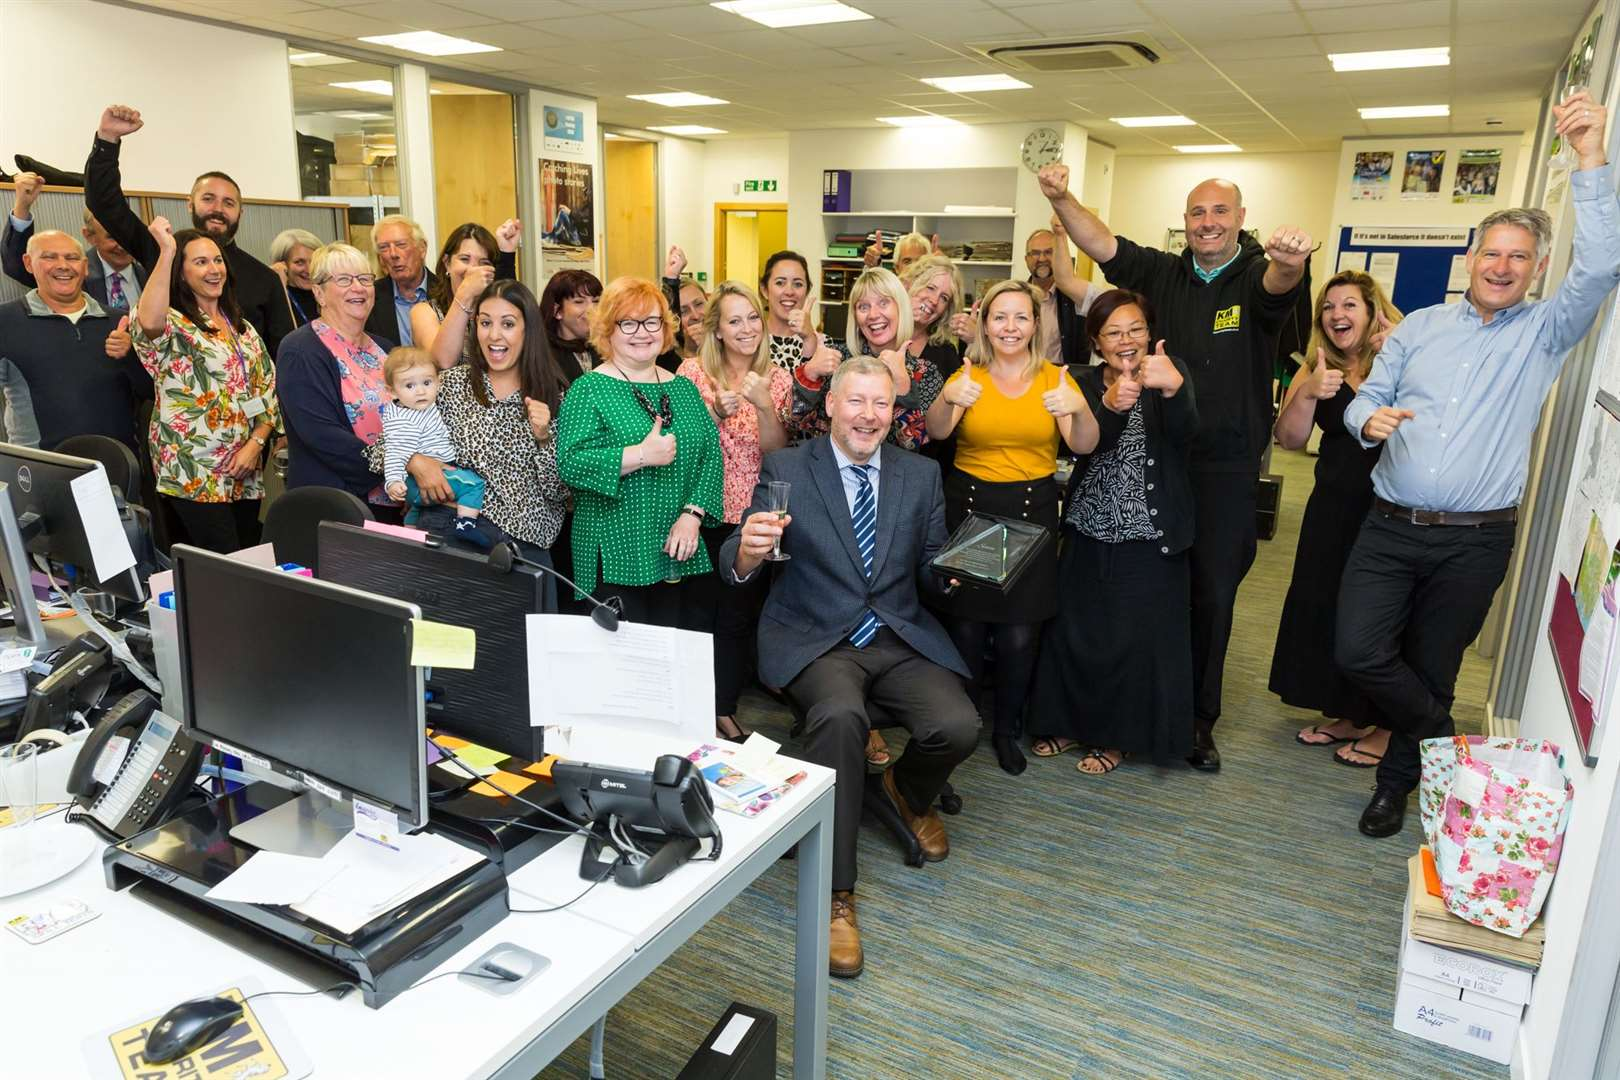 Staff and sponsors give outgoing CEO of the KM Charity Team Simon Dolby a rousing send off.